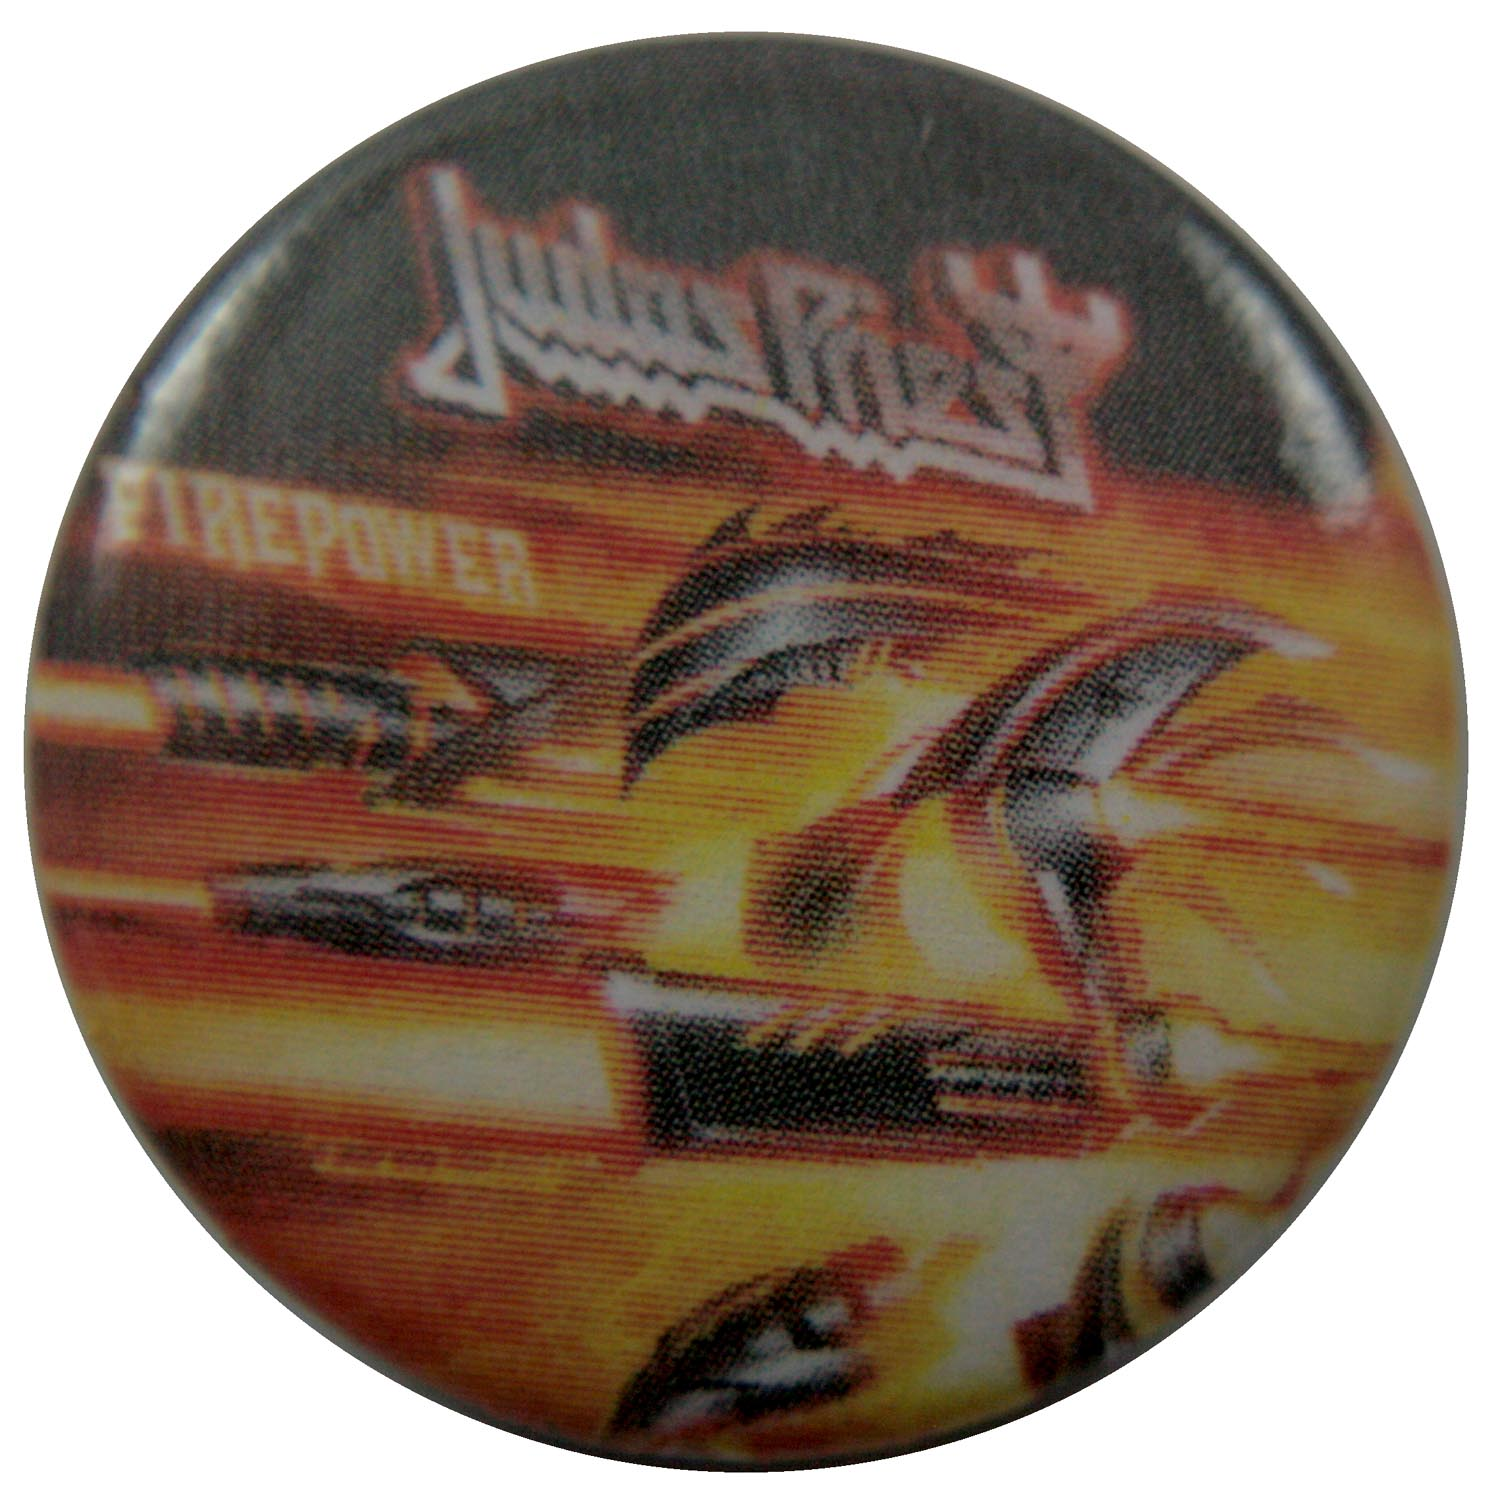 Judas Priest Button Badge